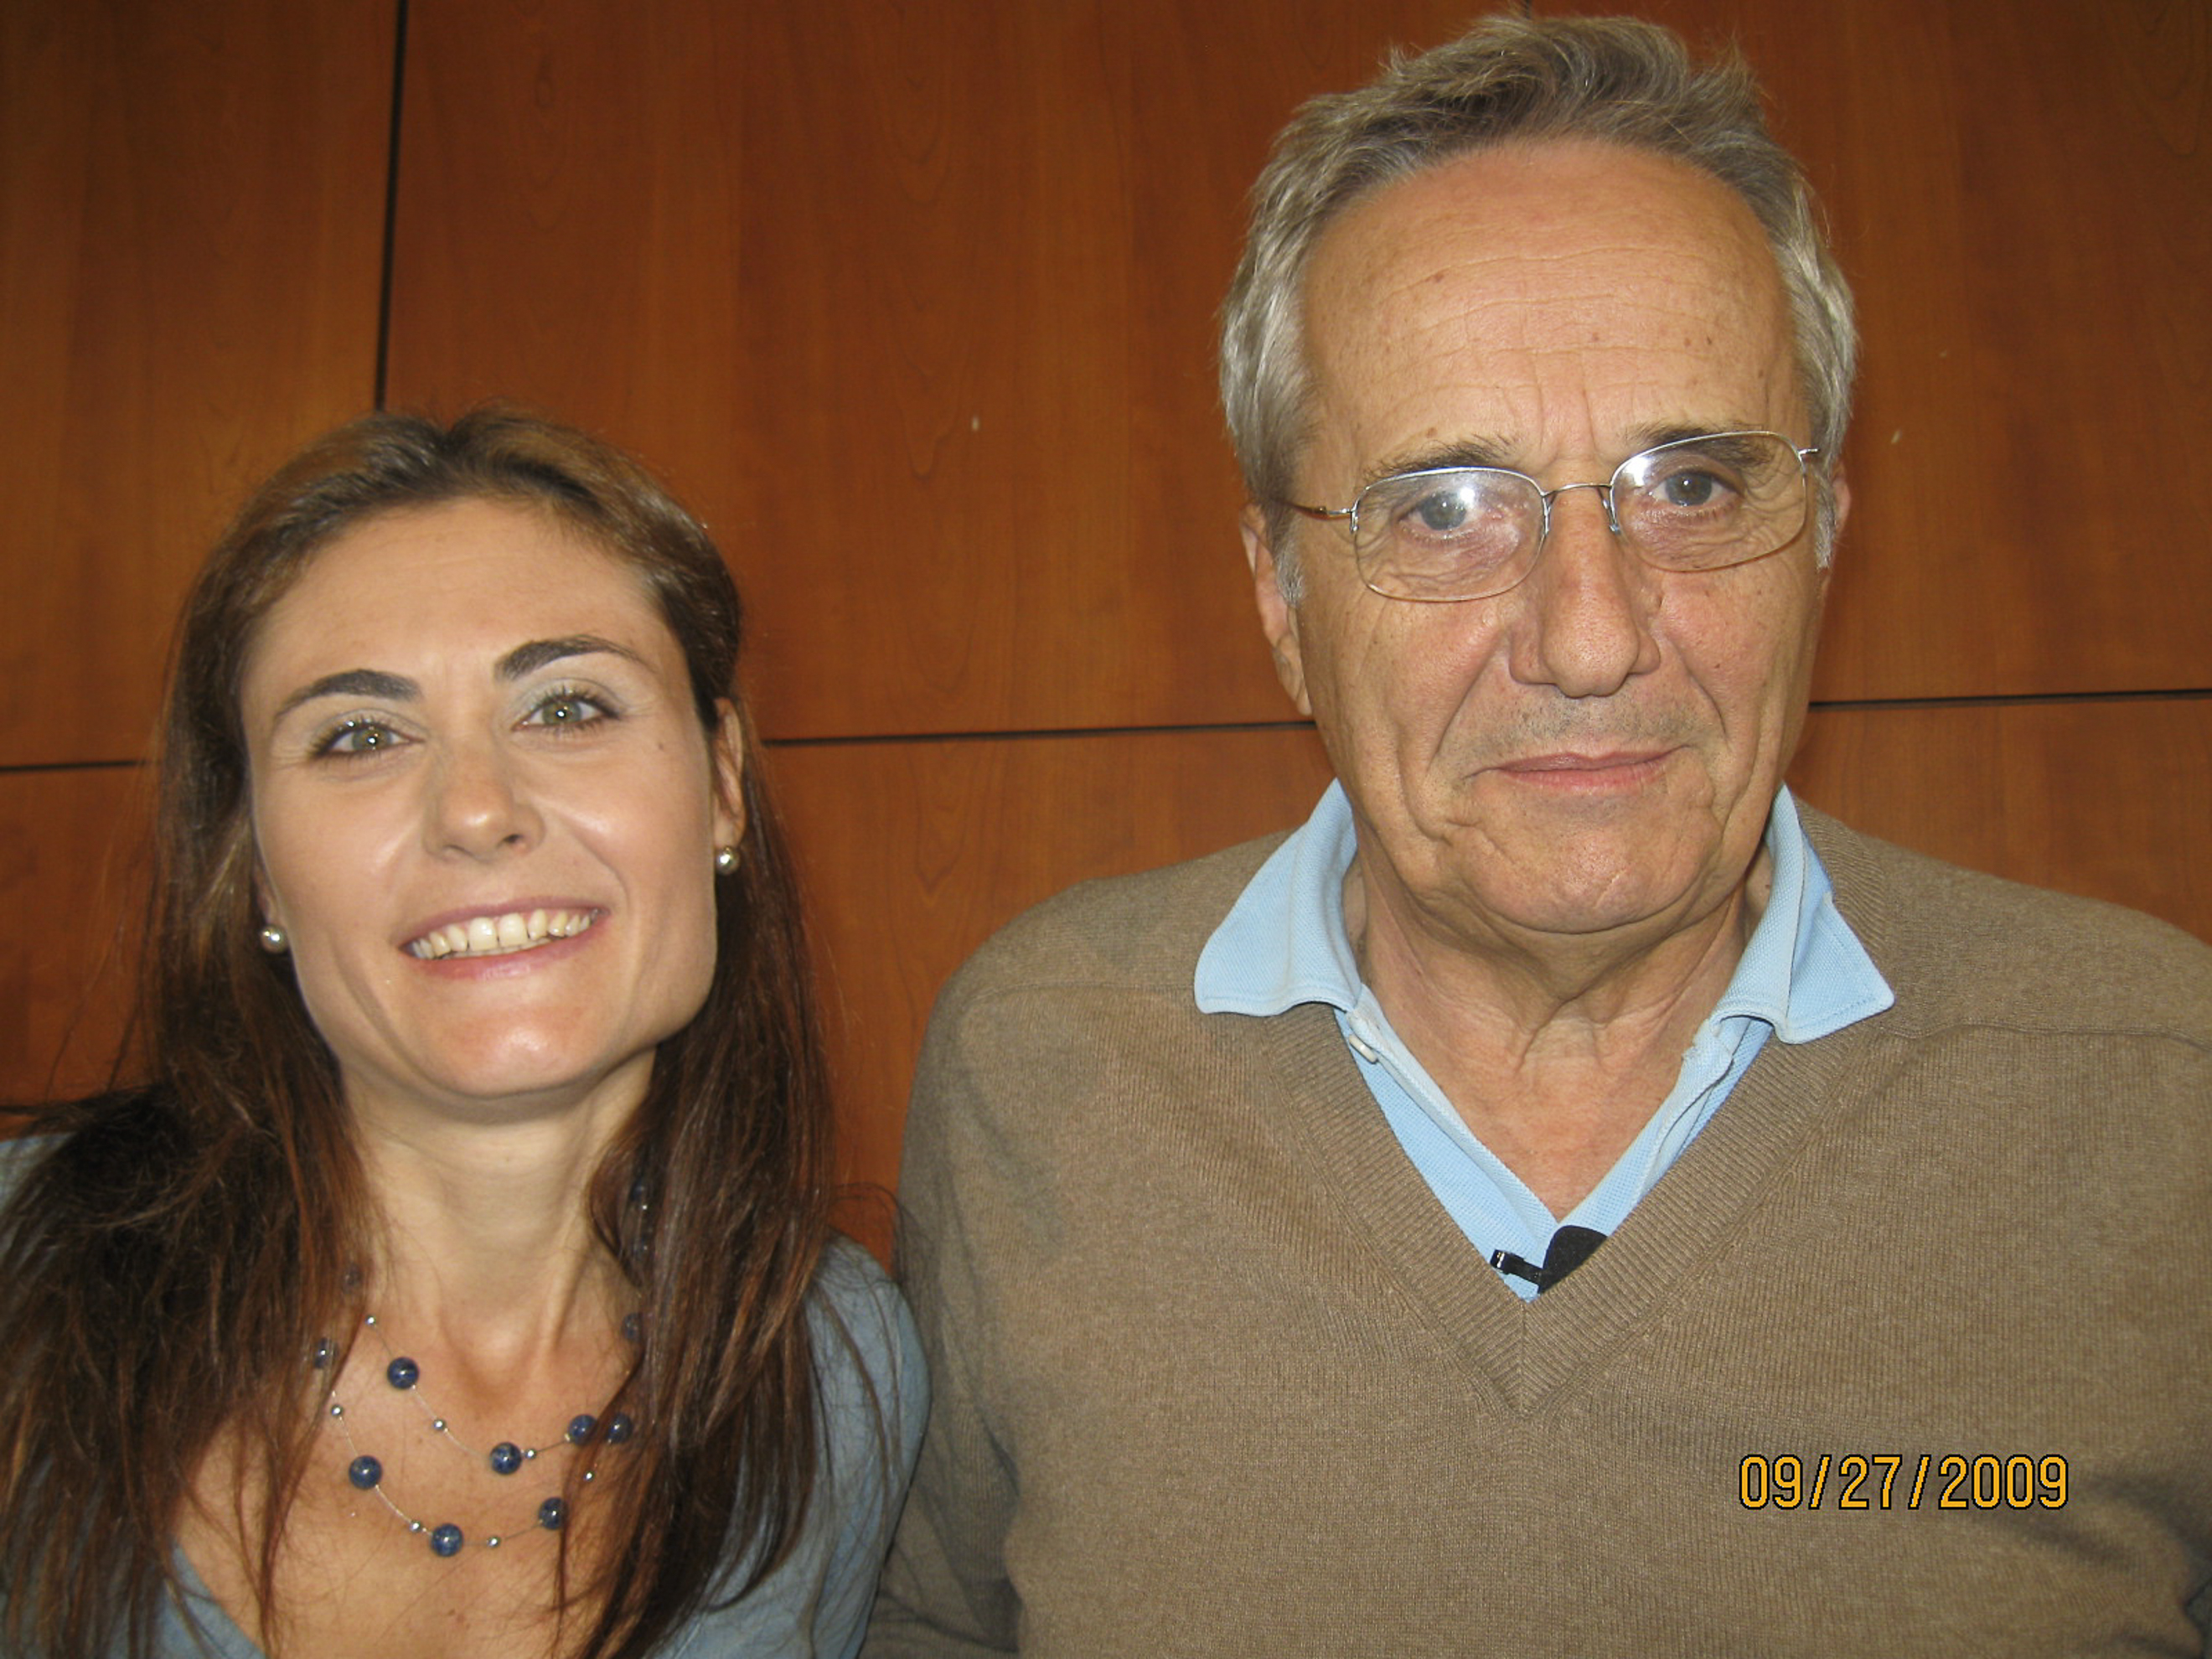 with Marco Bellocchio